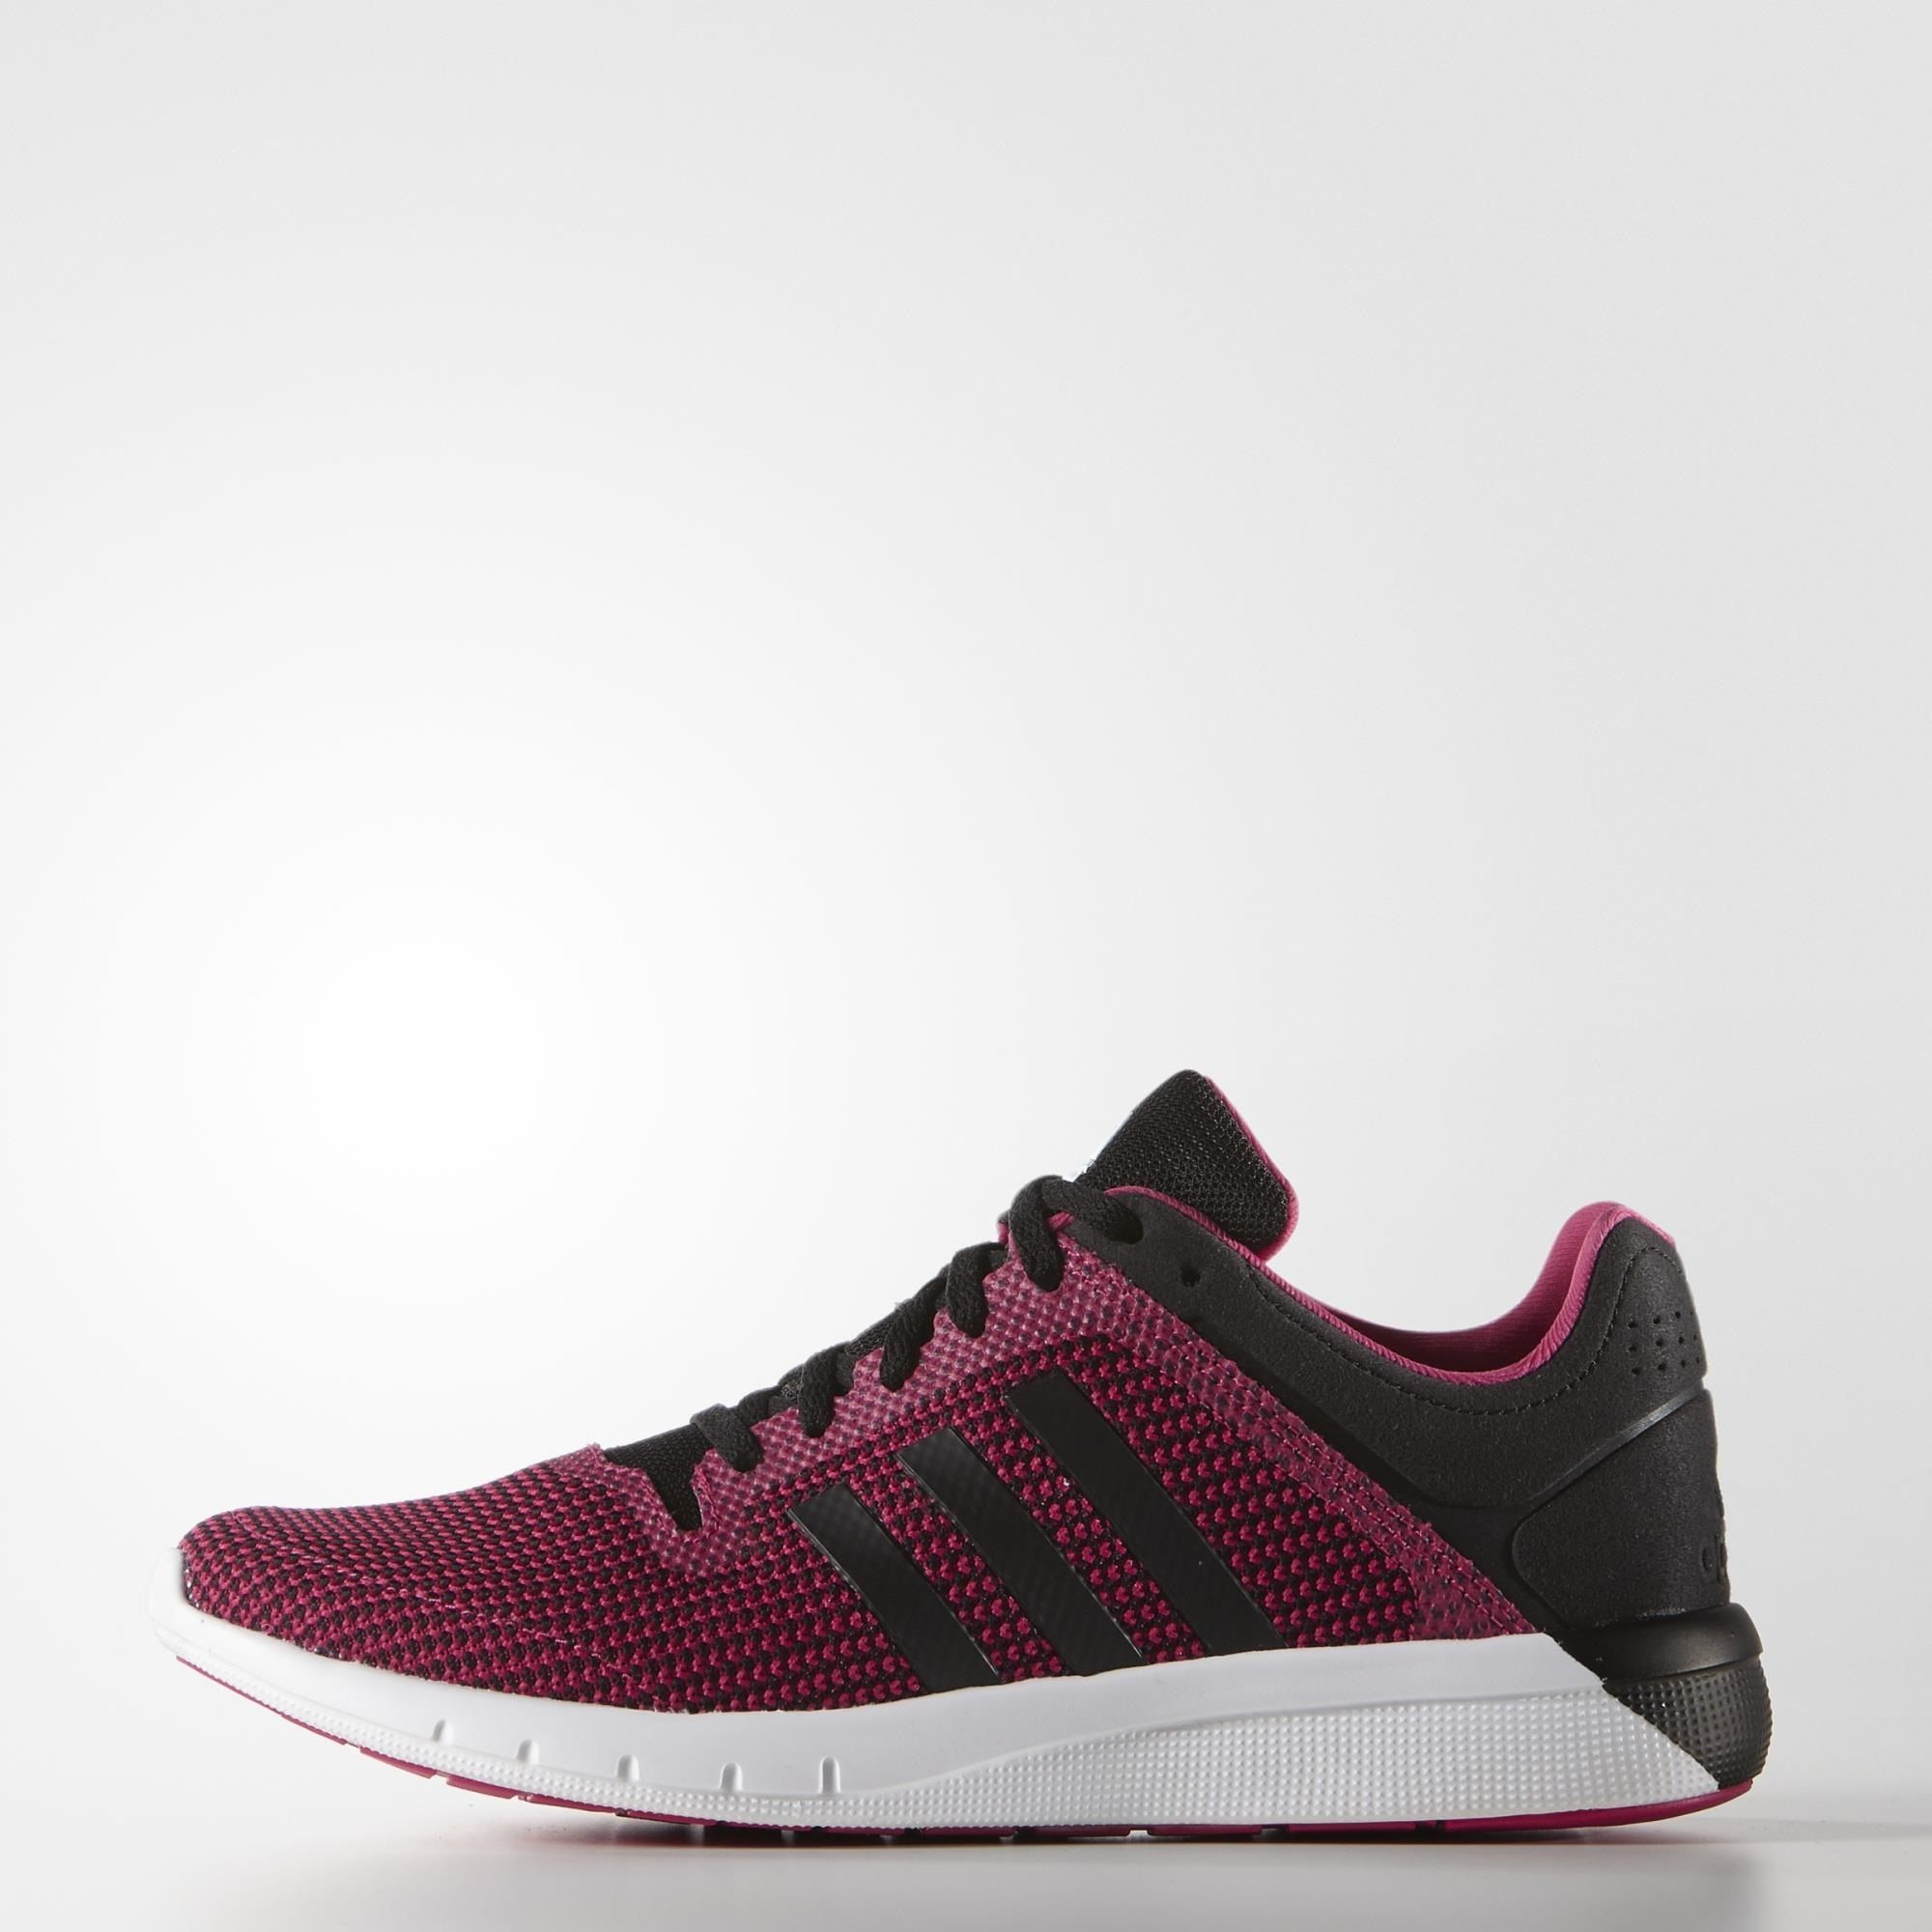 adidas climacool shoes black and pink